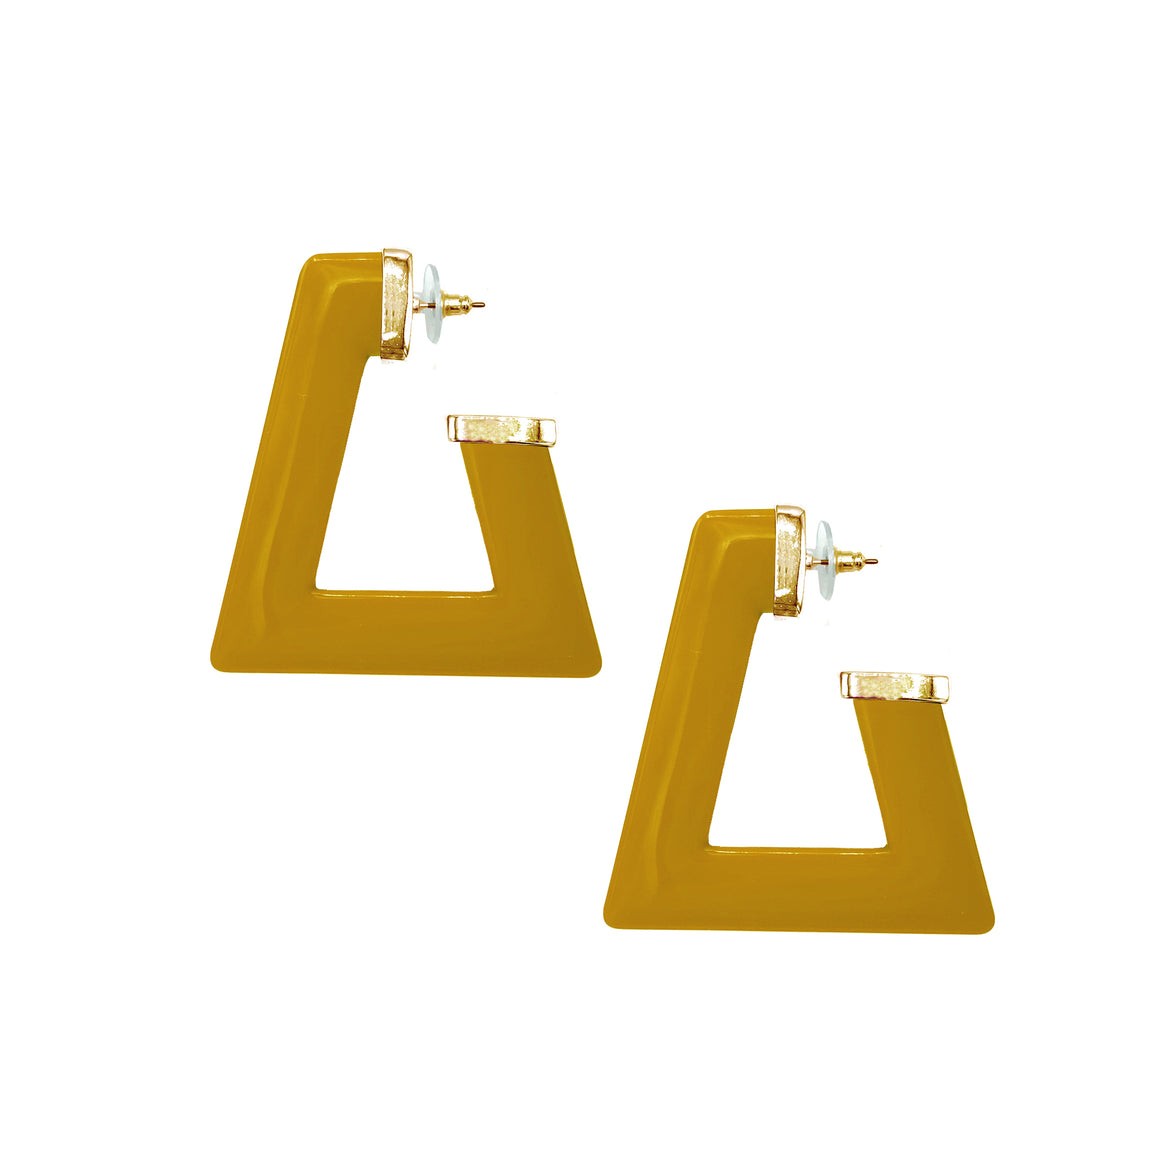 Trapezoid Hoops Earrings, Earrings, Tuleste, Tuleste